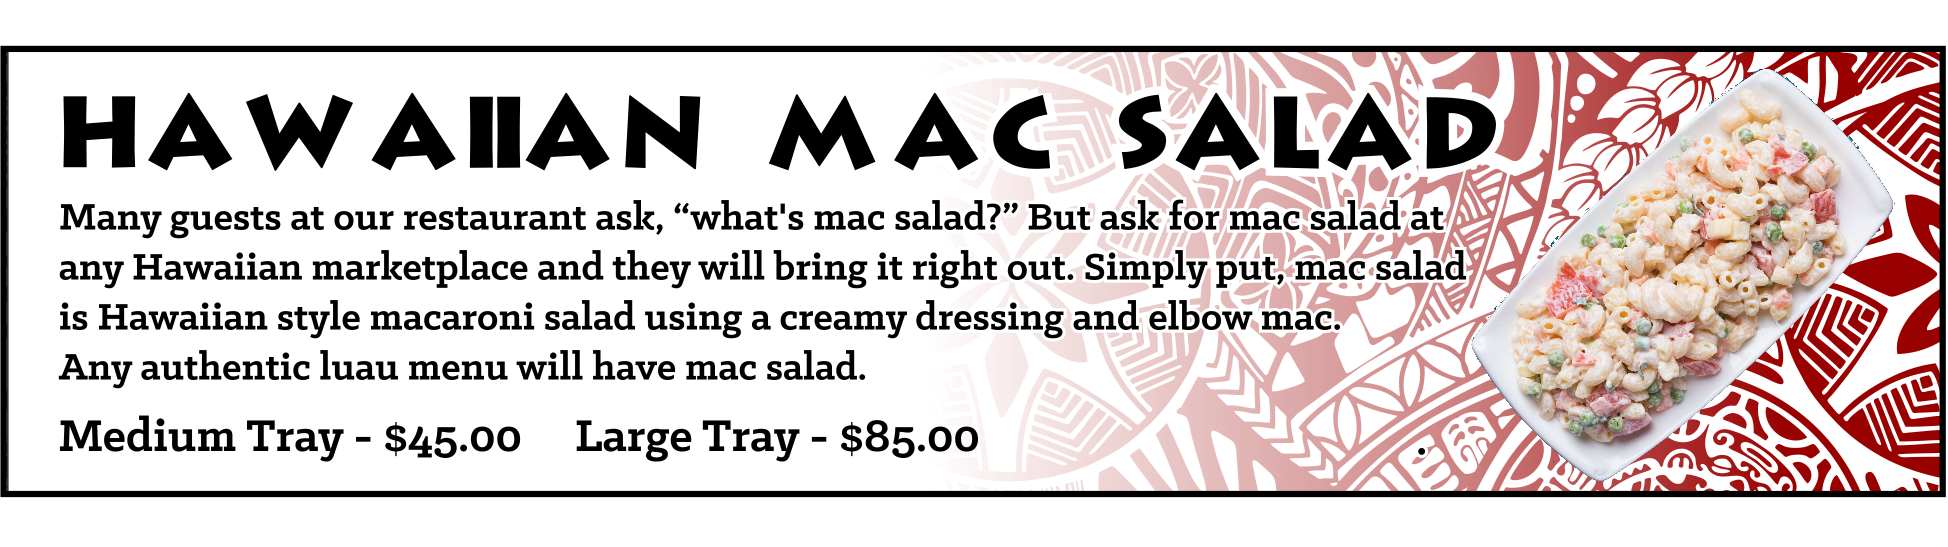 """Many guests at our restaurant ask, """"what's mac salad?"""" But ask for mac salad at any Hawaiian marketplace and they will bring it right out. Simply put, mac salad is Hawaiian style macaroni salad using a creamy dressing and elbow mac. Any authentic luau menu will have mac salad. Medium Tray - sufficient for approximately 10-15 guests, $45, Large Tray - sufficient for approximately 20-30 guests, $85"""